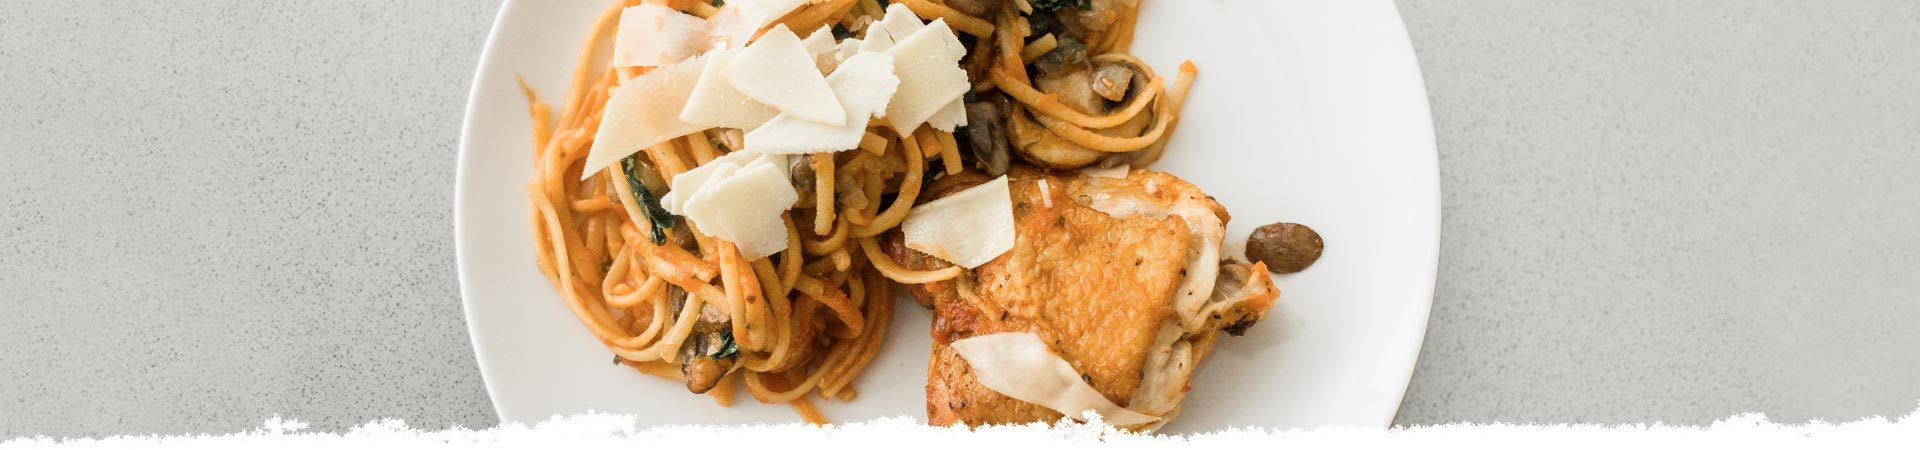 Braised Chicken with Linguine